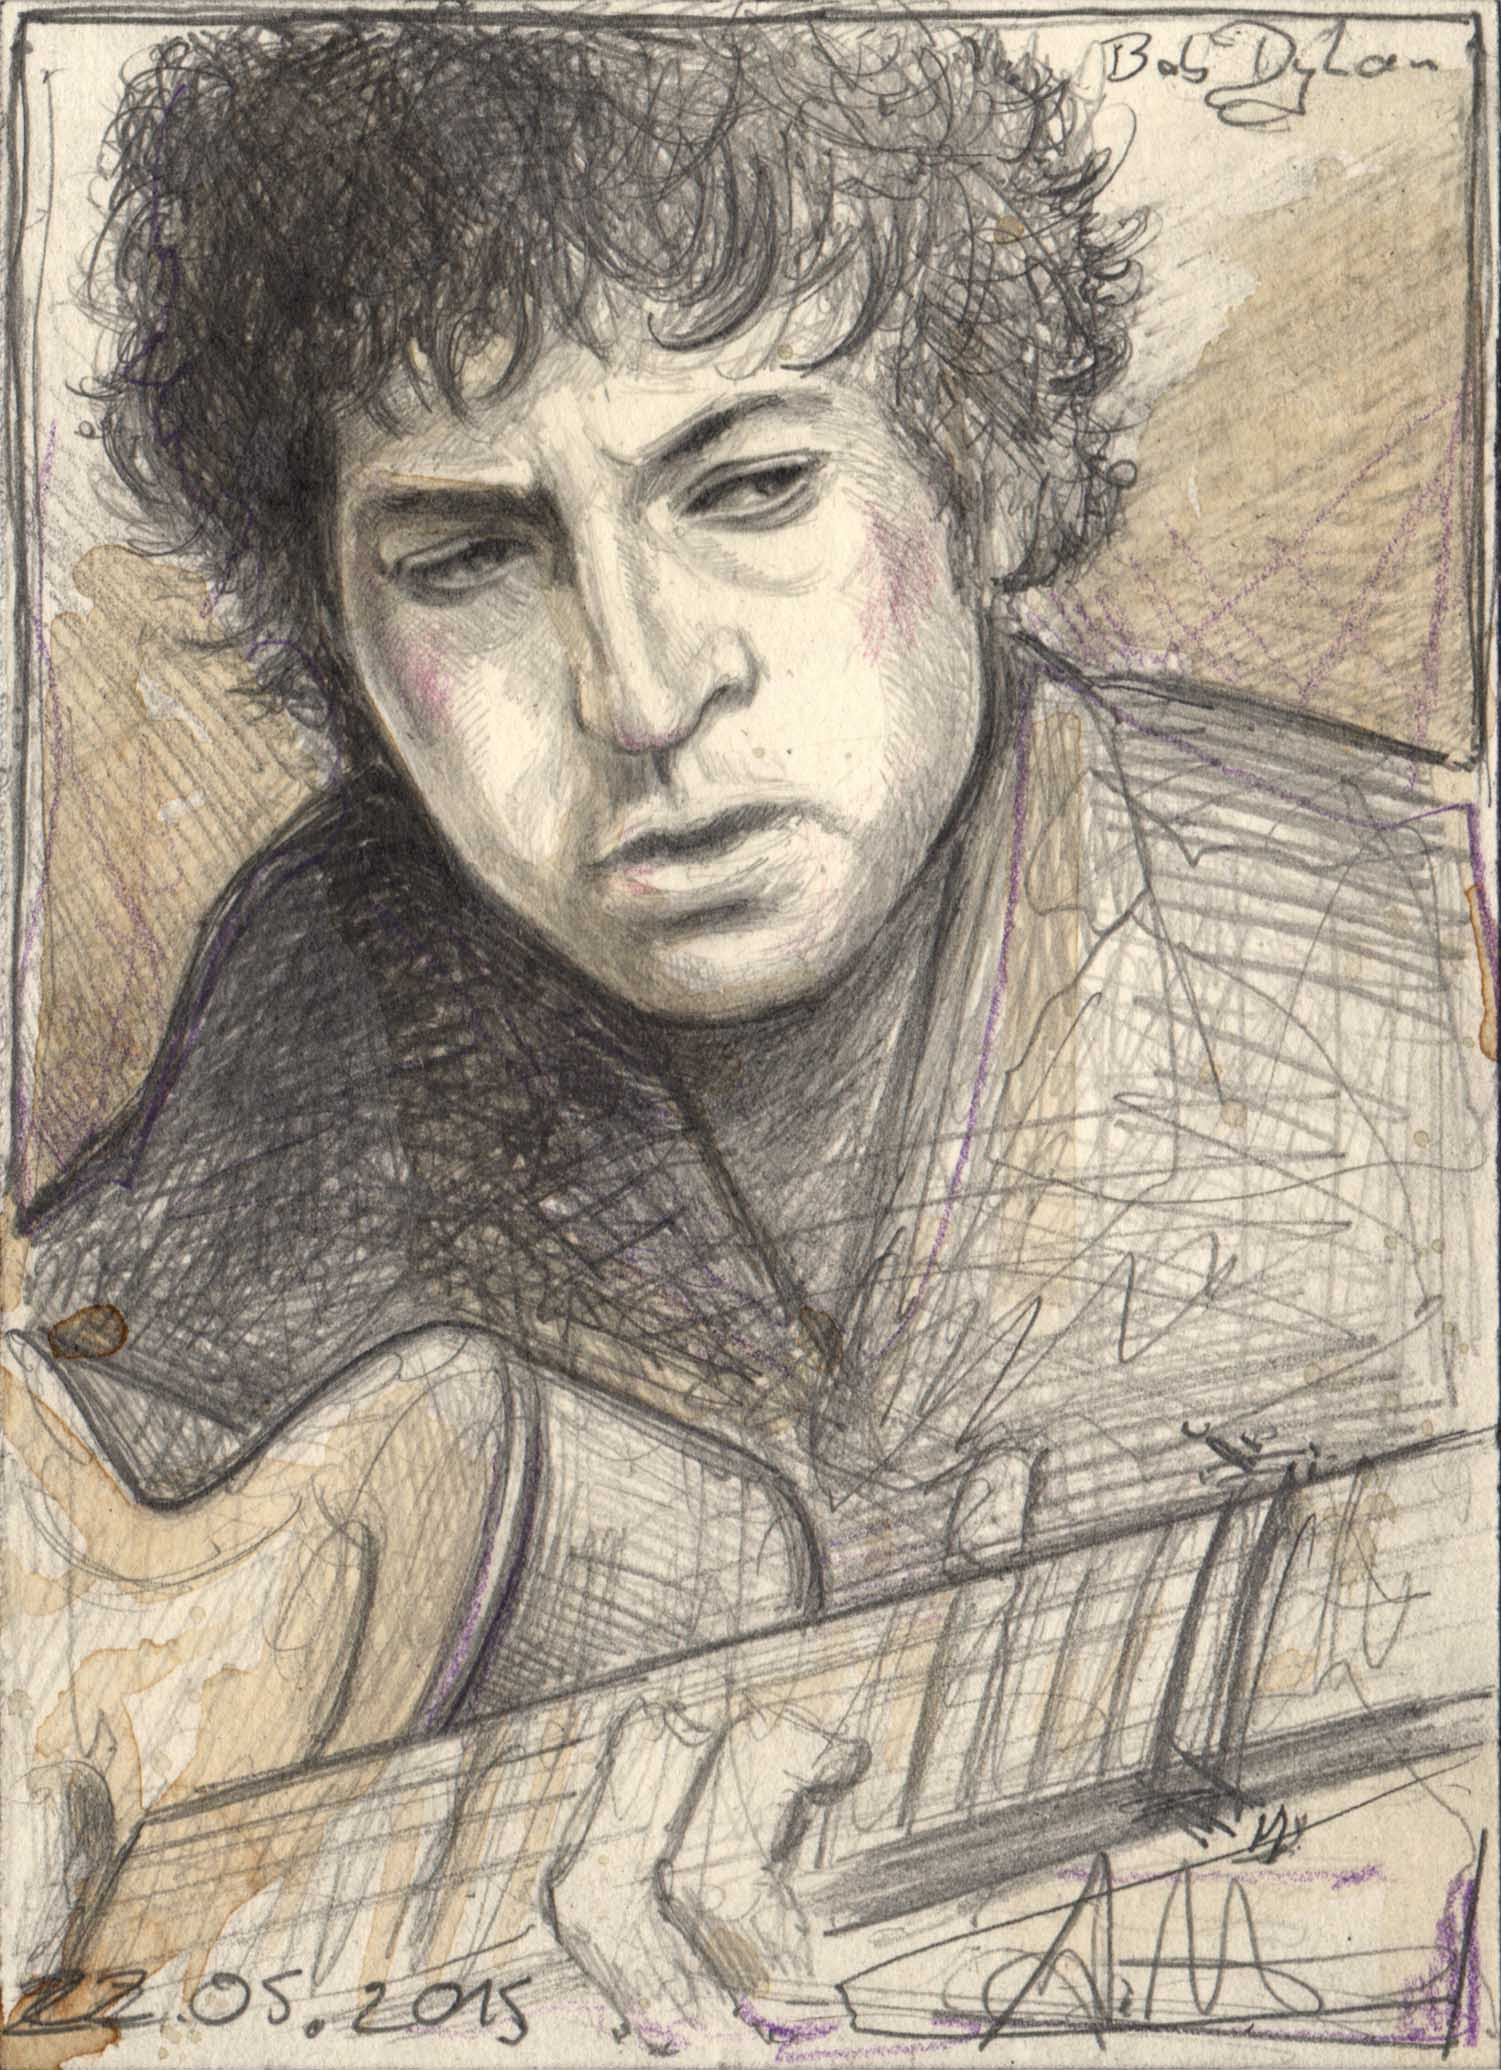 Bob Dylan (early)